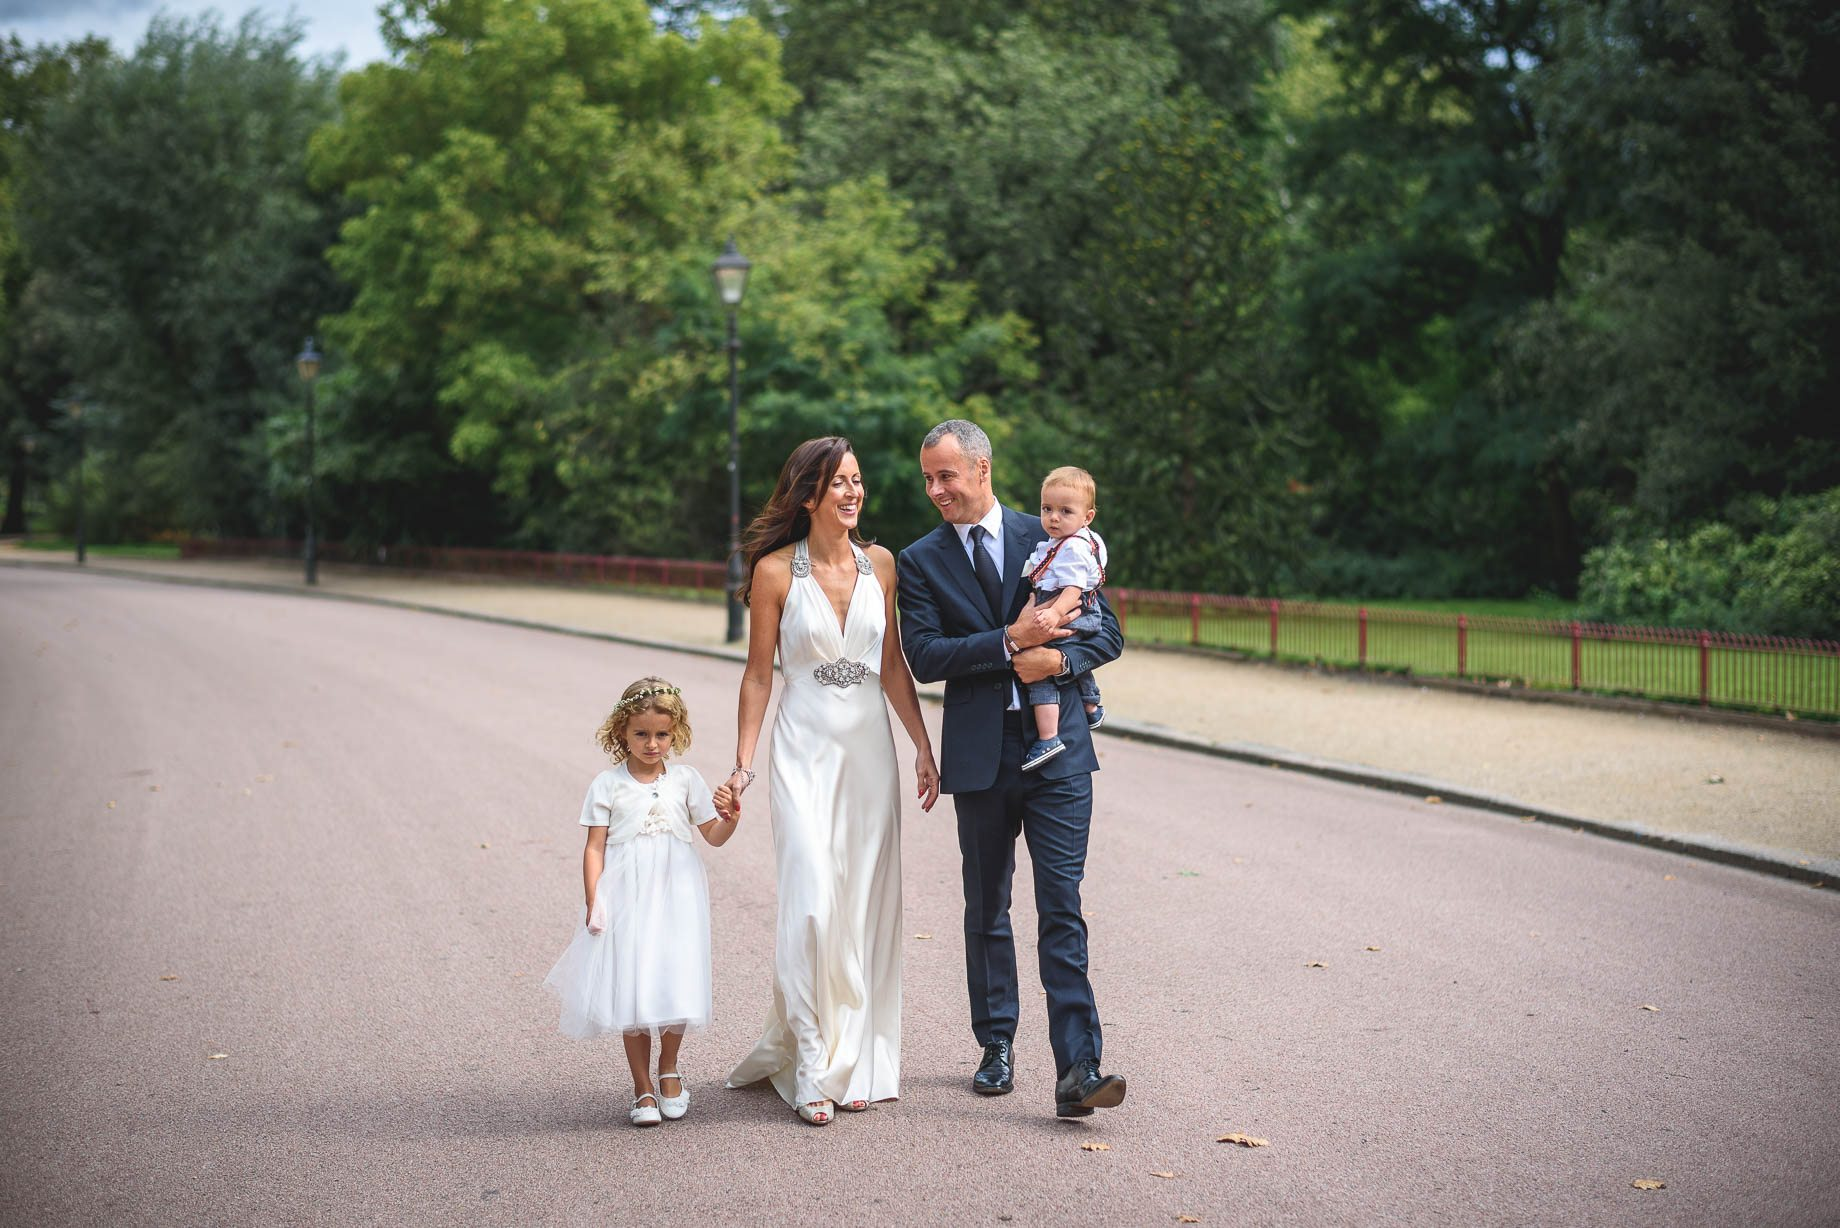 Chelsea-and-Mayfair-wedding-photography-Guy-Collier-Vicki-and-Damien-79-of-126